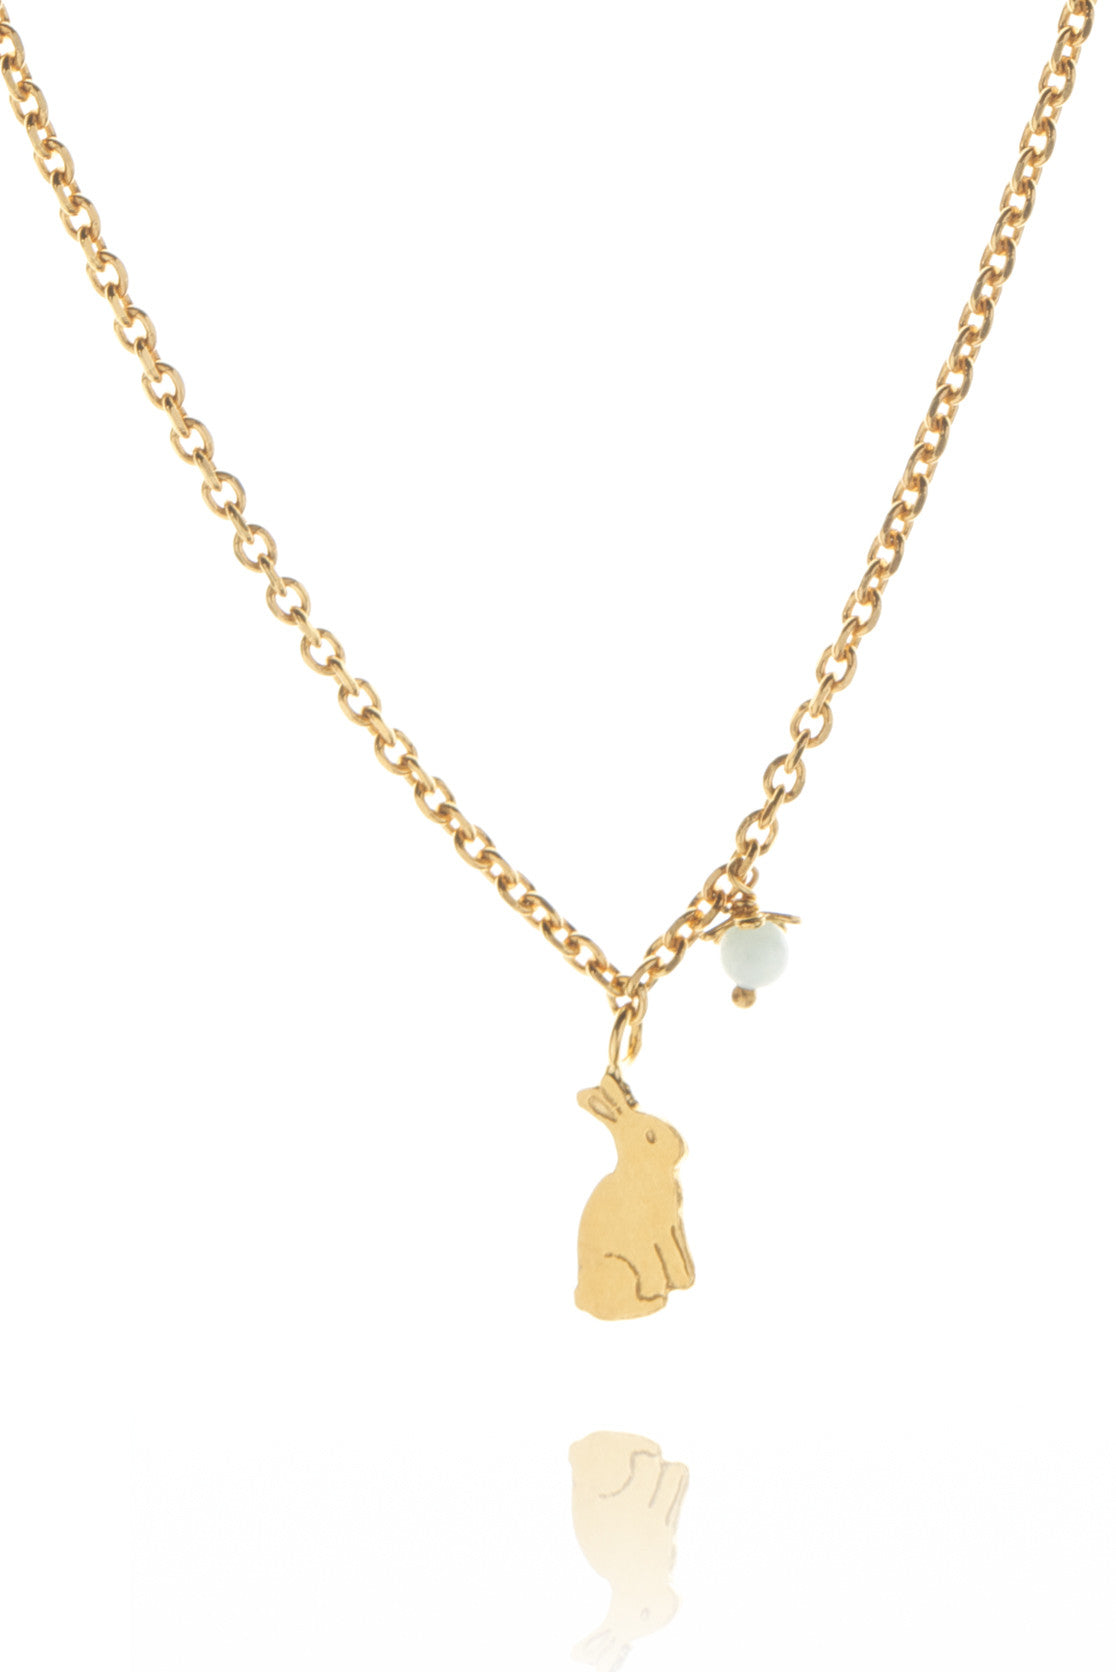 22ct Gold Vermeil with pale blue amazonite